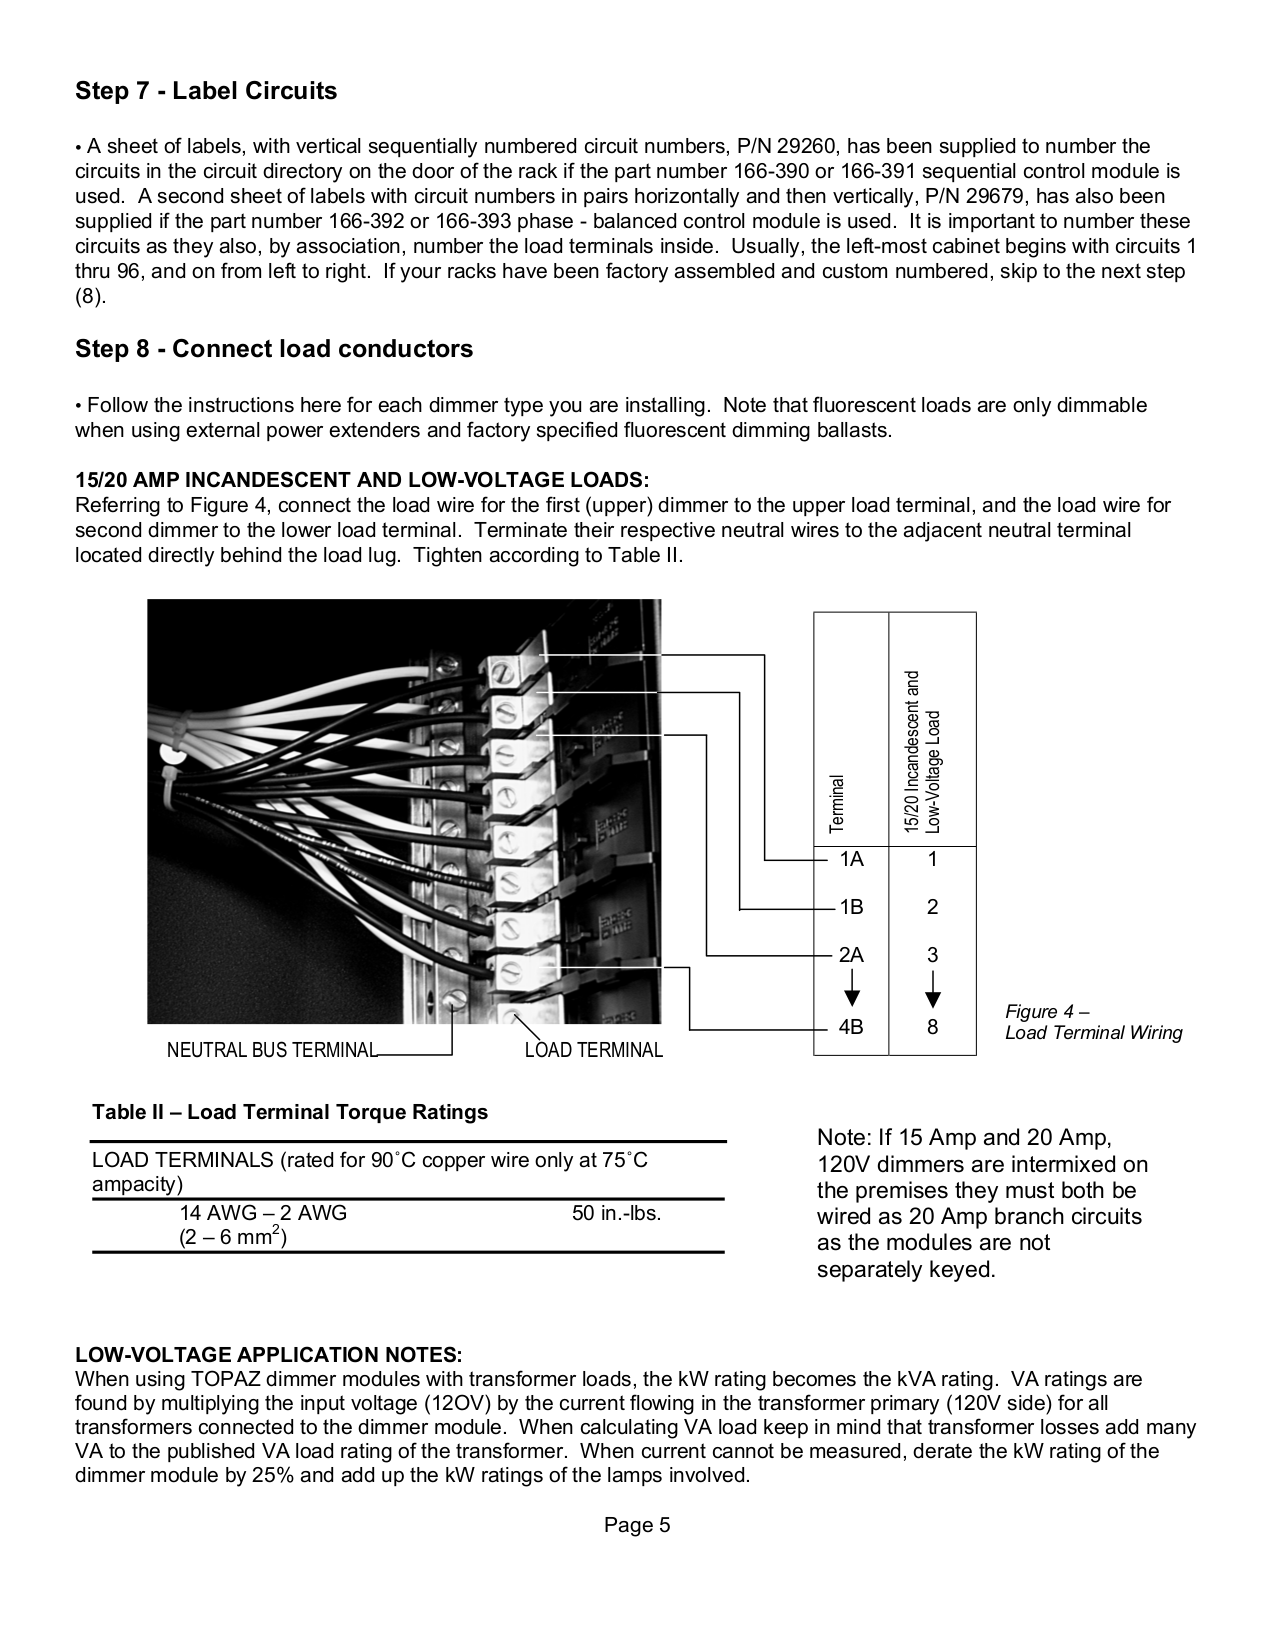 Pdf manual for leviton other i series i 96 dimmer racks leviton other i series i 96 dimmer racks pdf page preview greentooth Choice Image